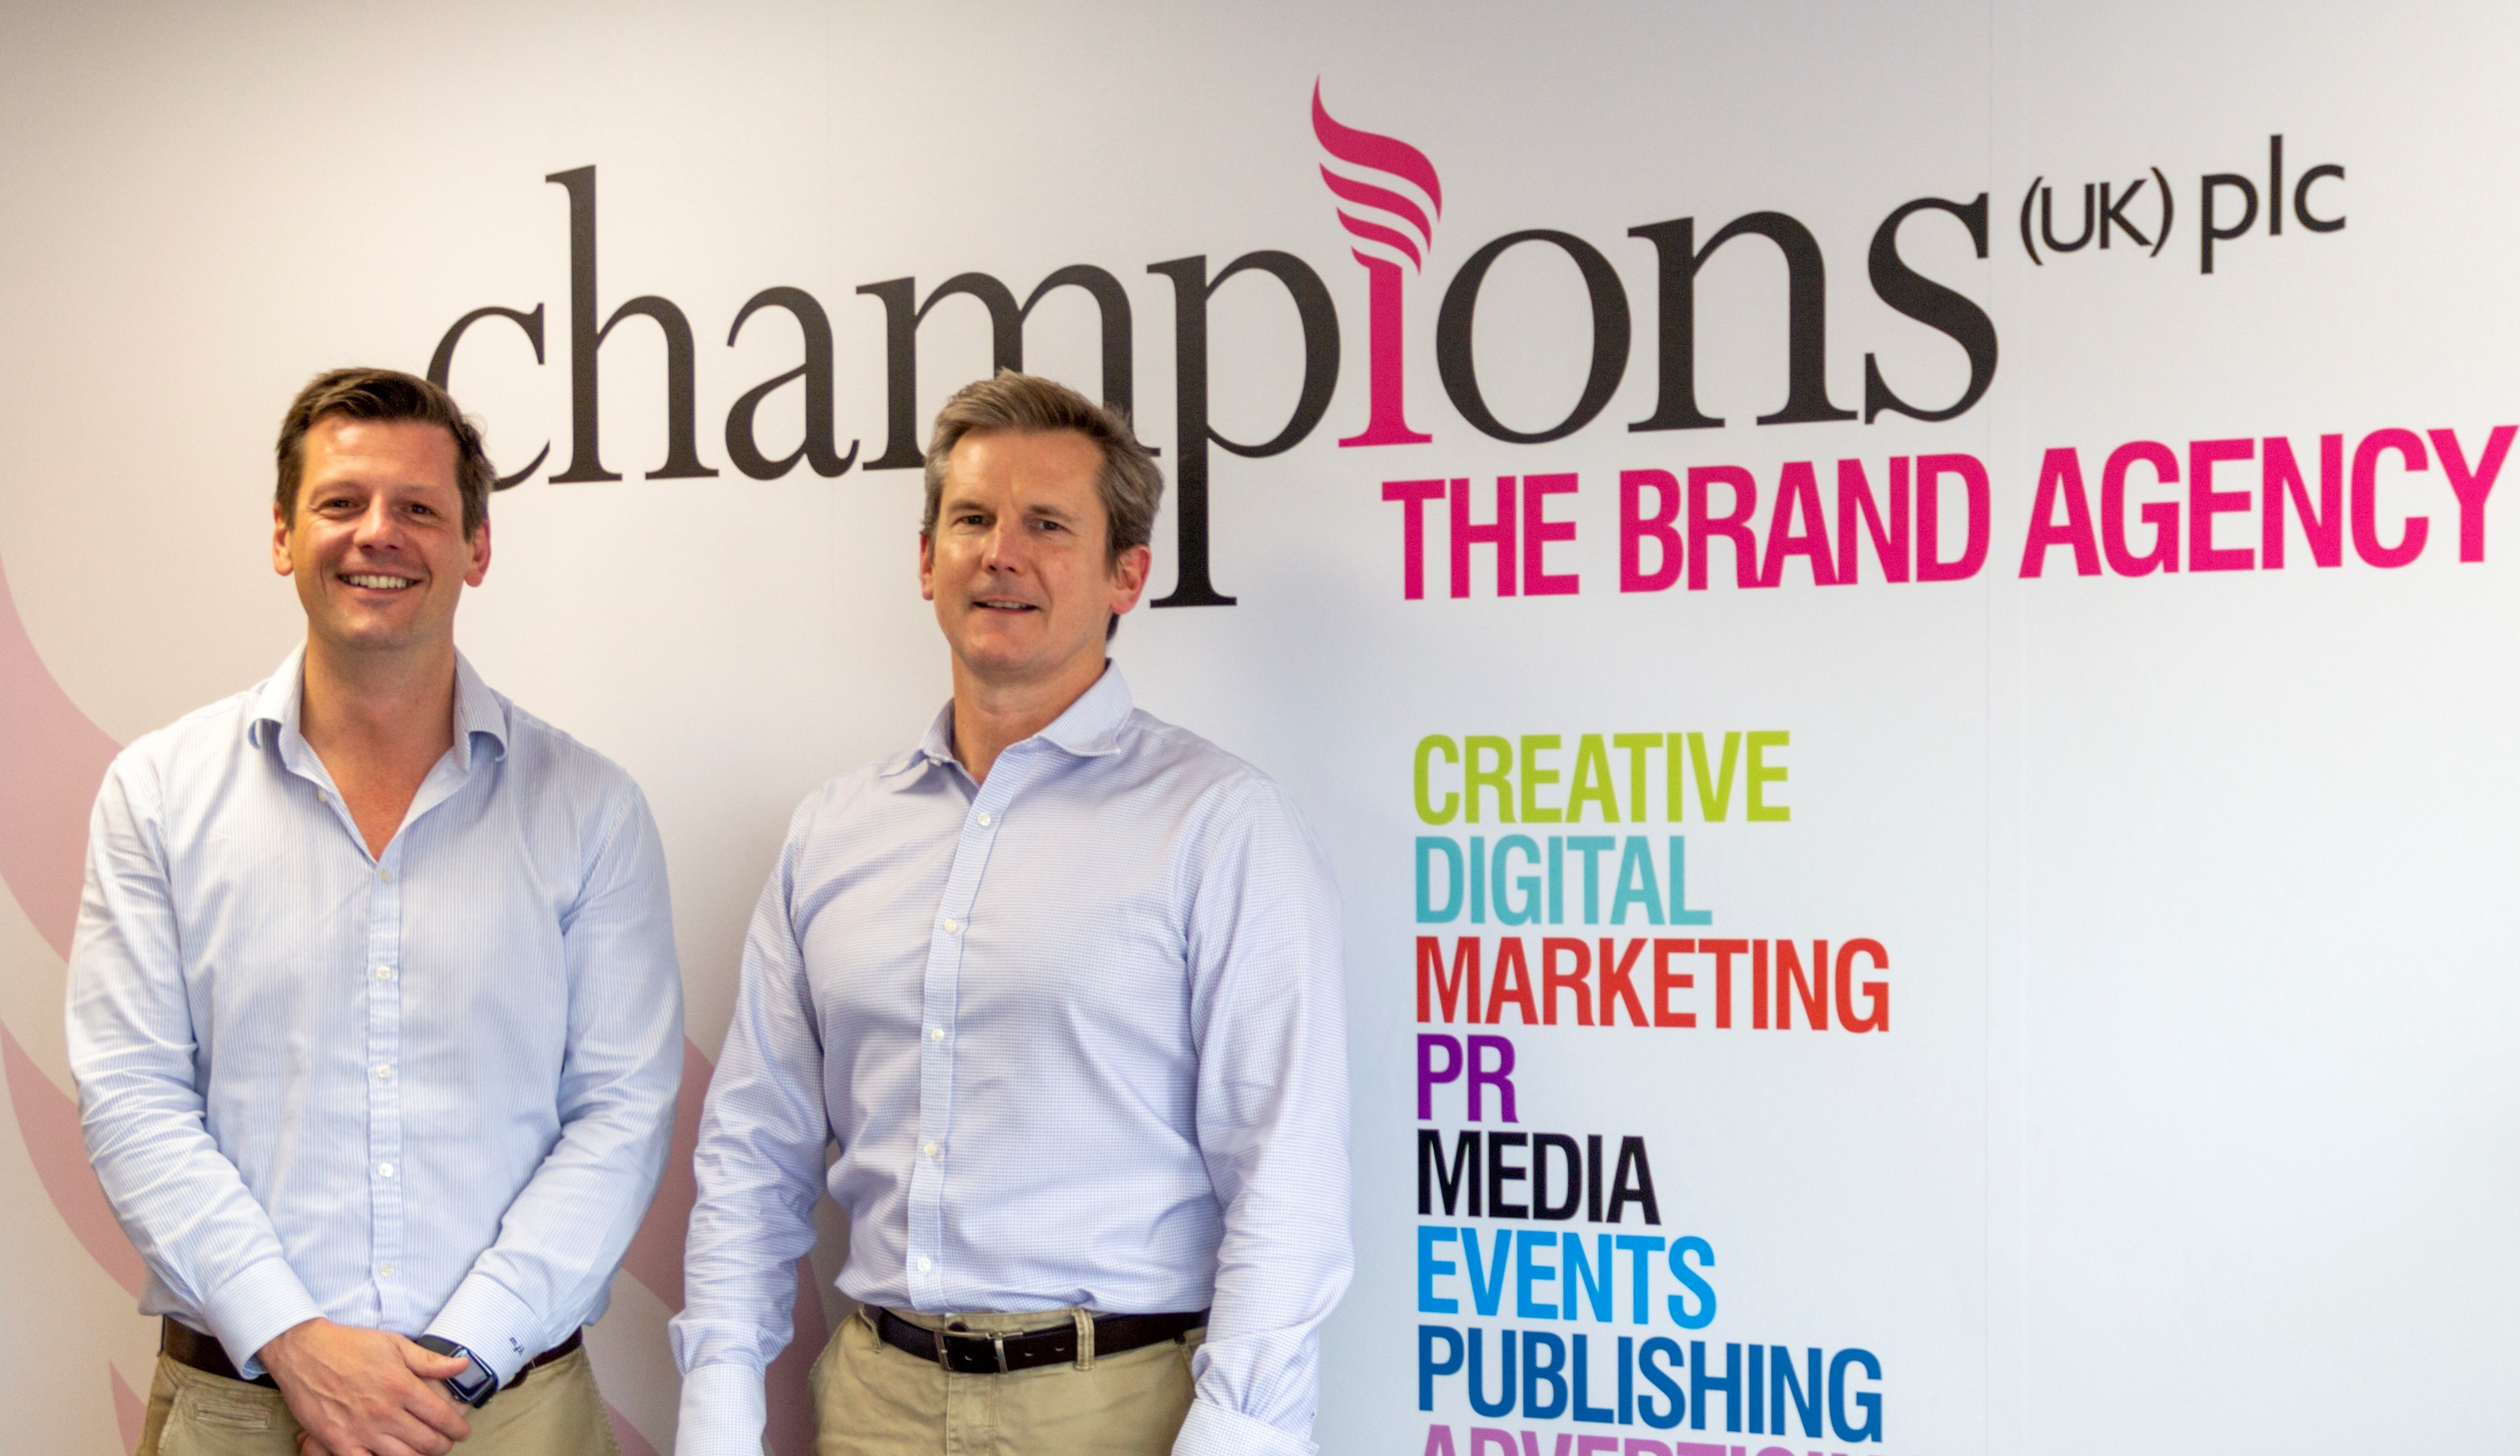 East Midlands brand agency Champions (UK) plc wins major aerospace industry client